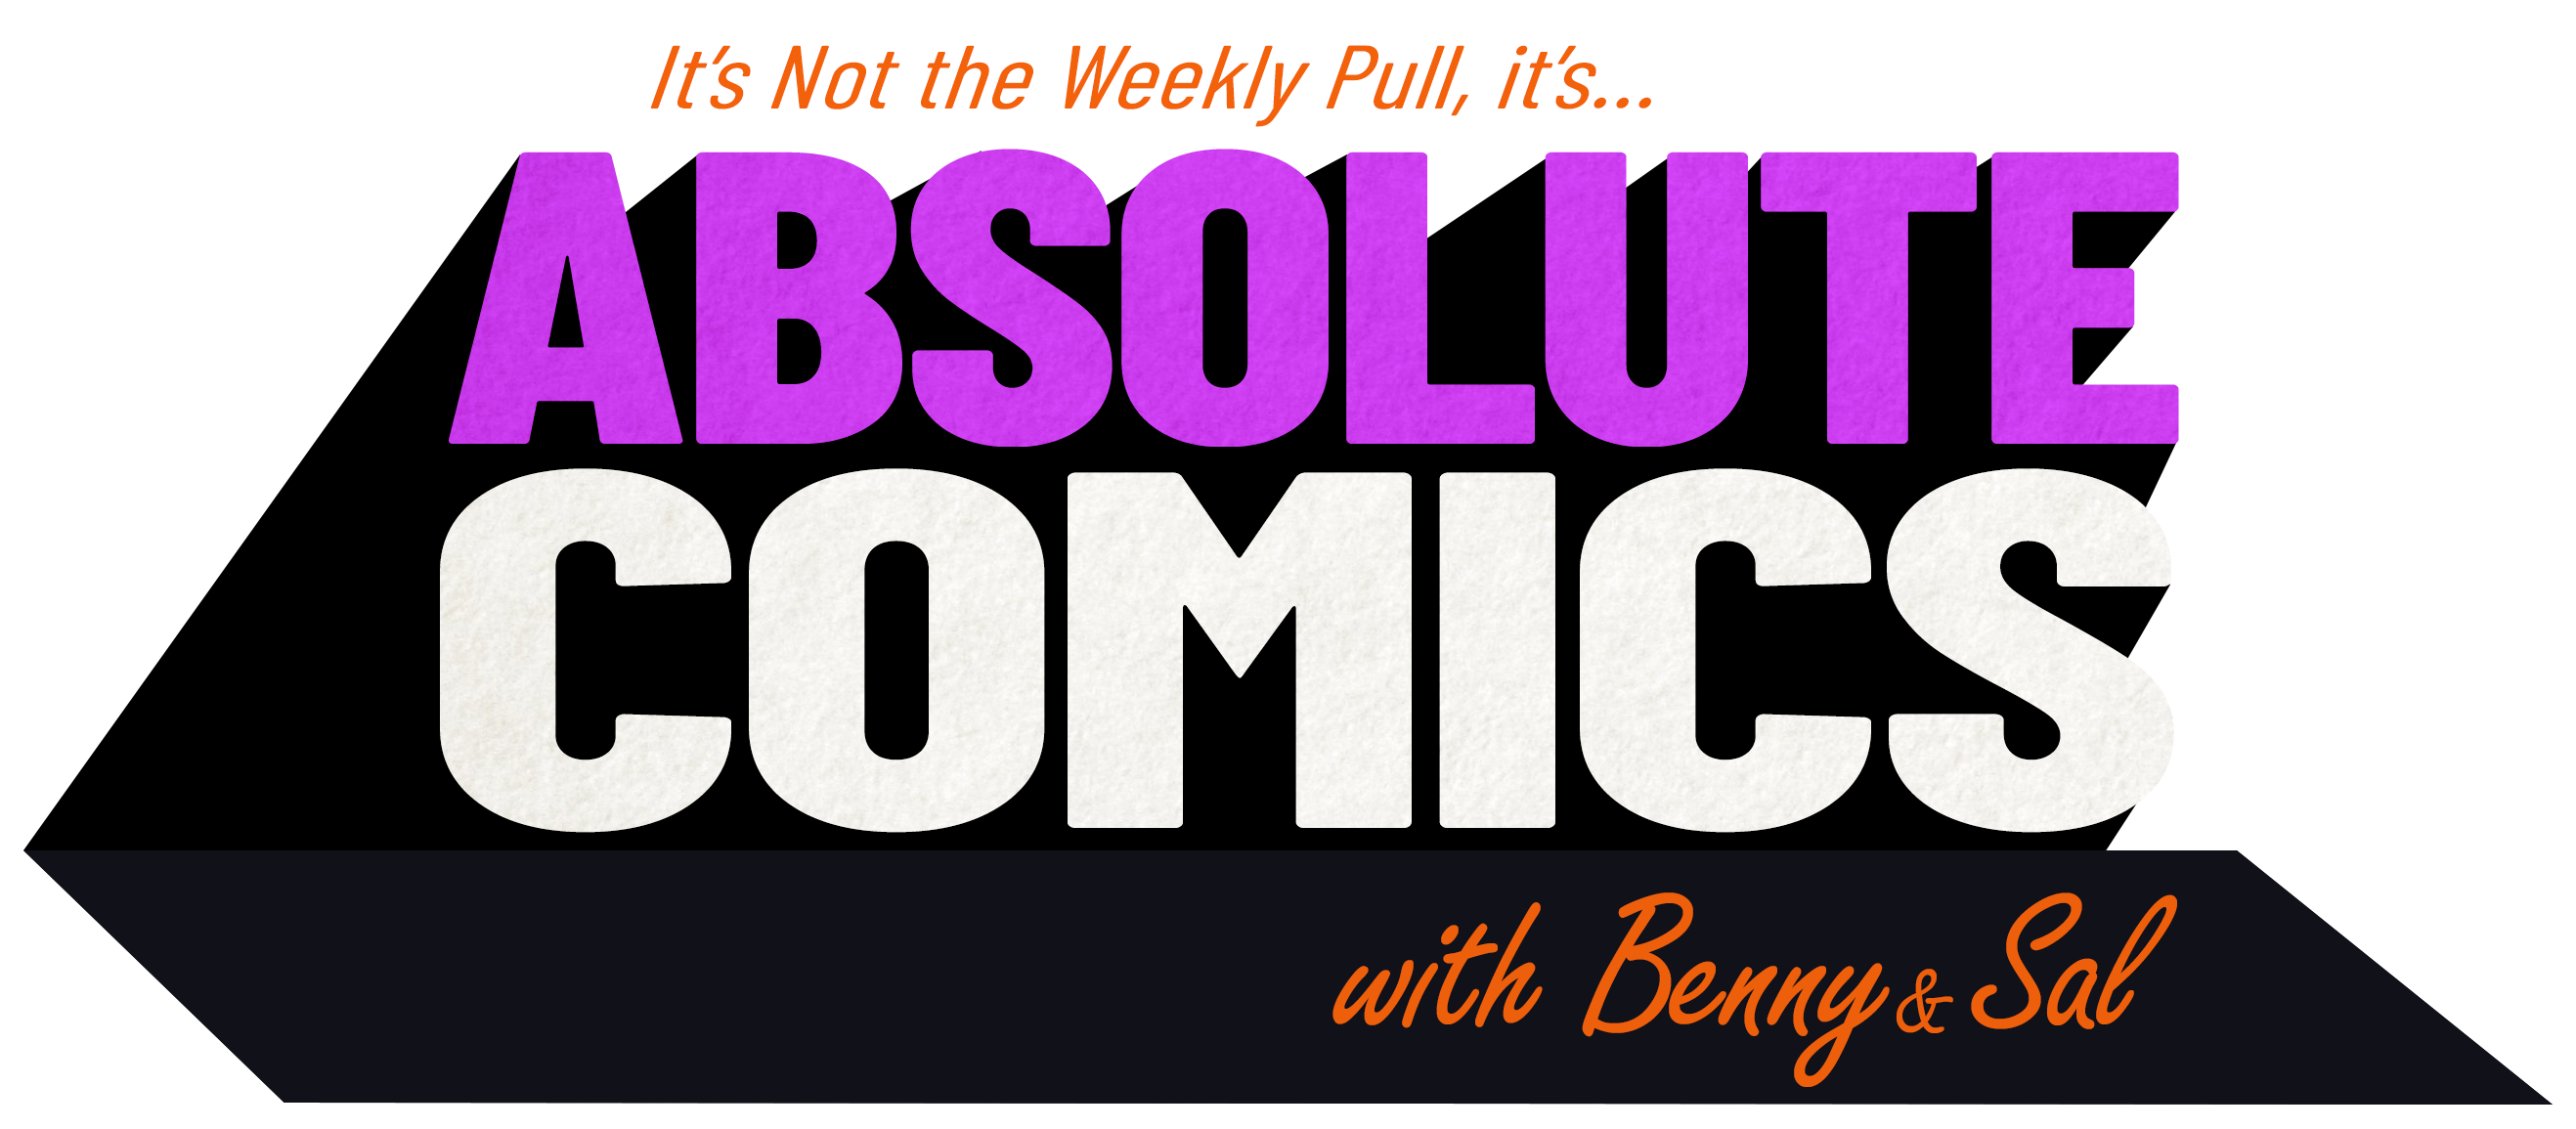 Absolute Comics logo